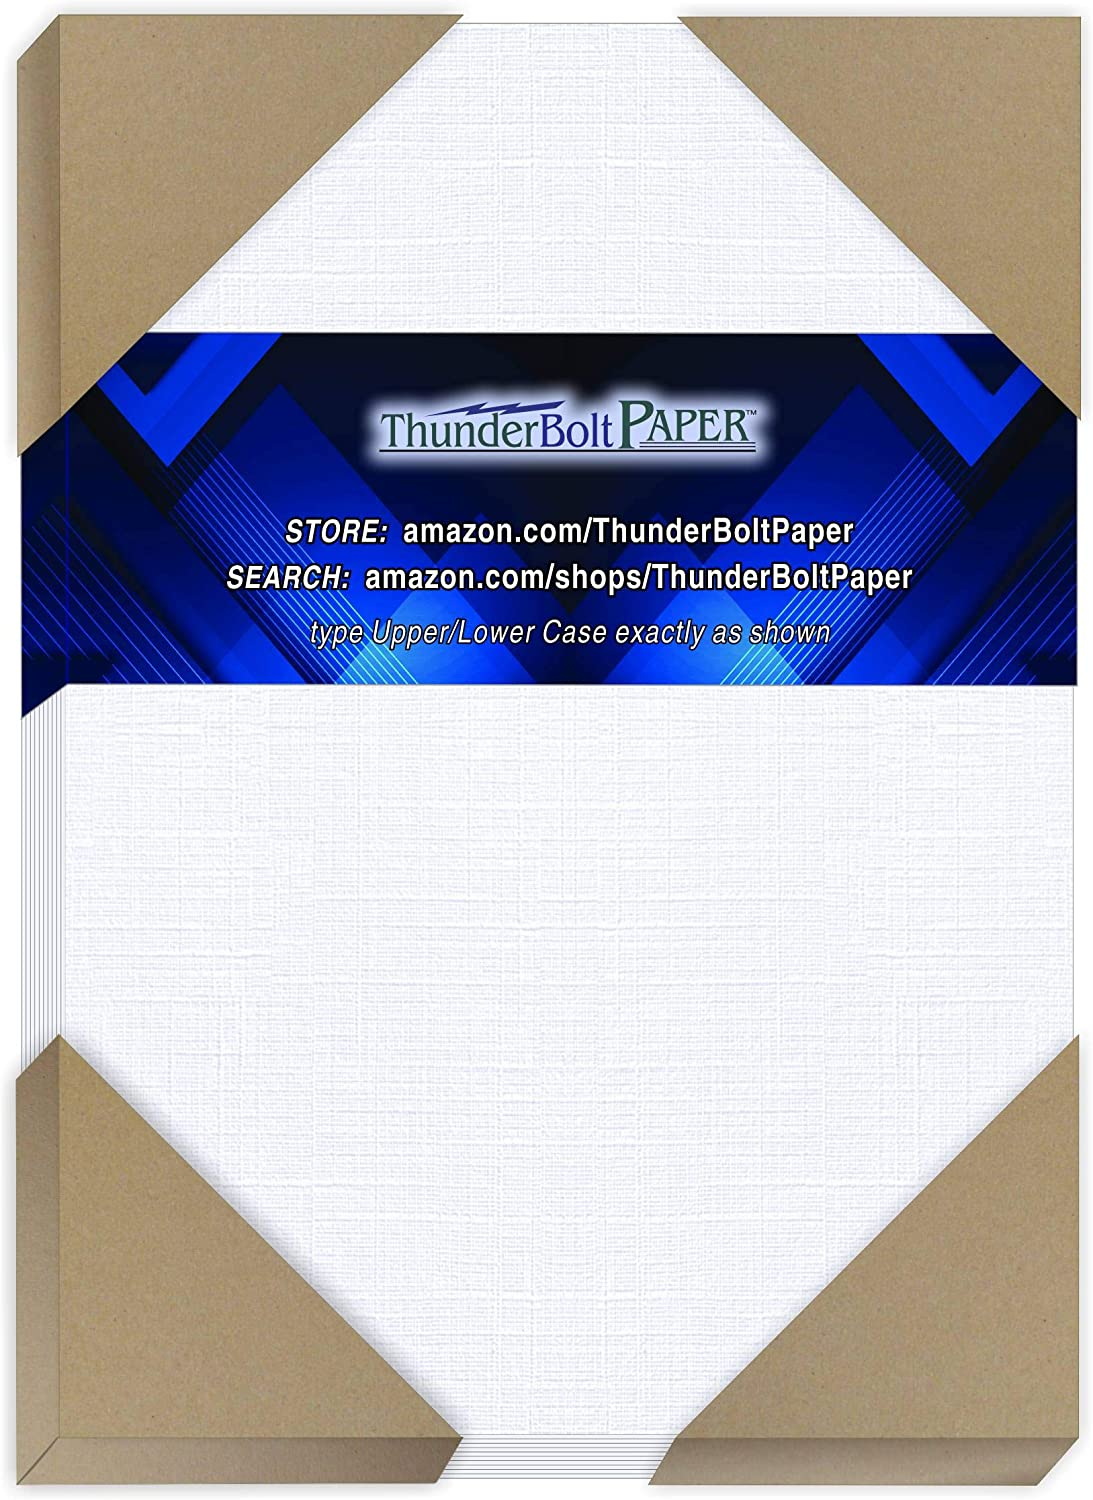 50 White Linen 80# Cover Paper Sheets - 5.5